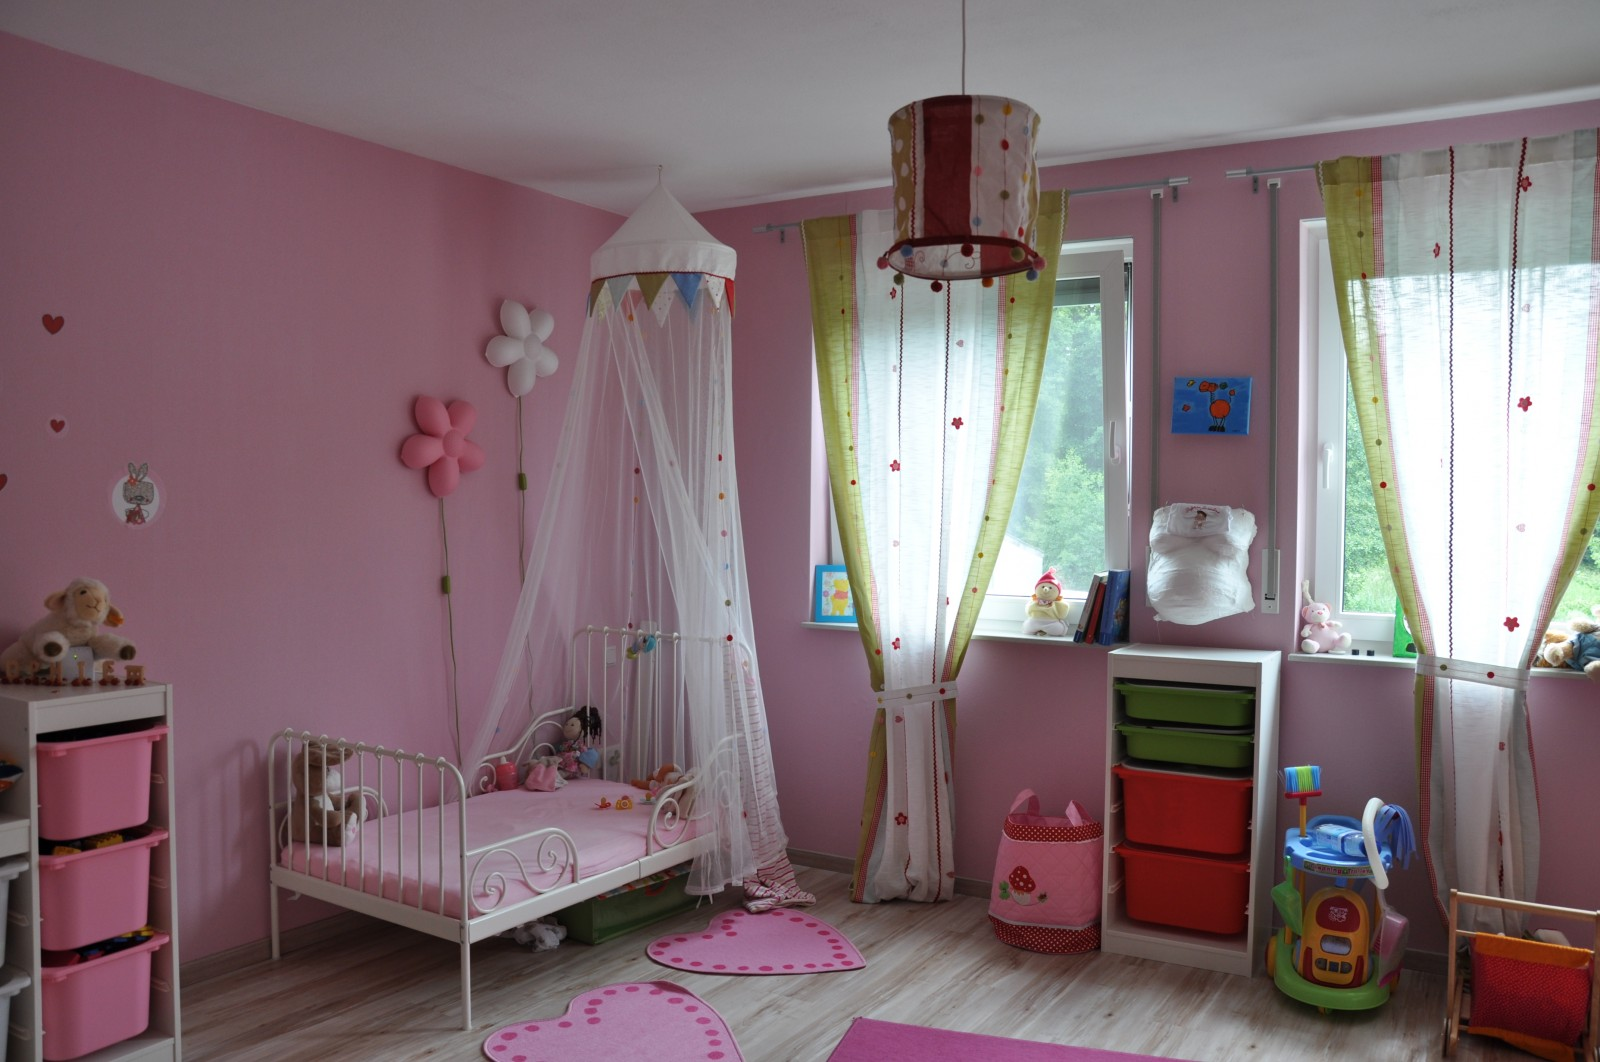 kinderzimmer 39 kleinkindtraum in rosa 39 unser kleines h uschen zimmerschau. Black Bedroom Furniture Sets. Home Design Ideas